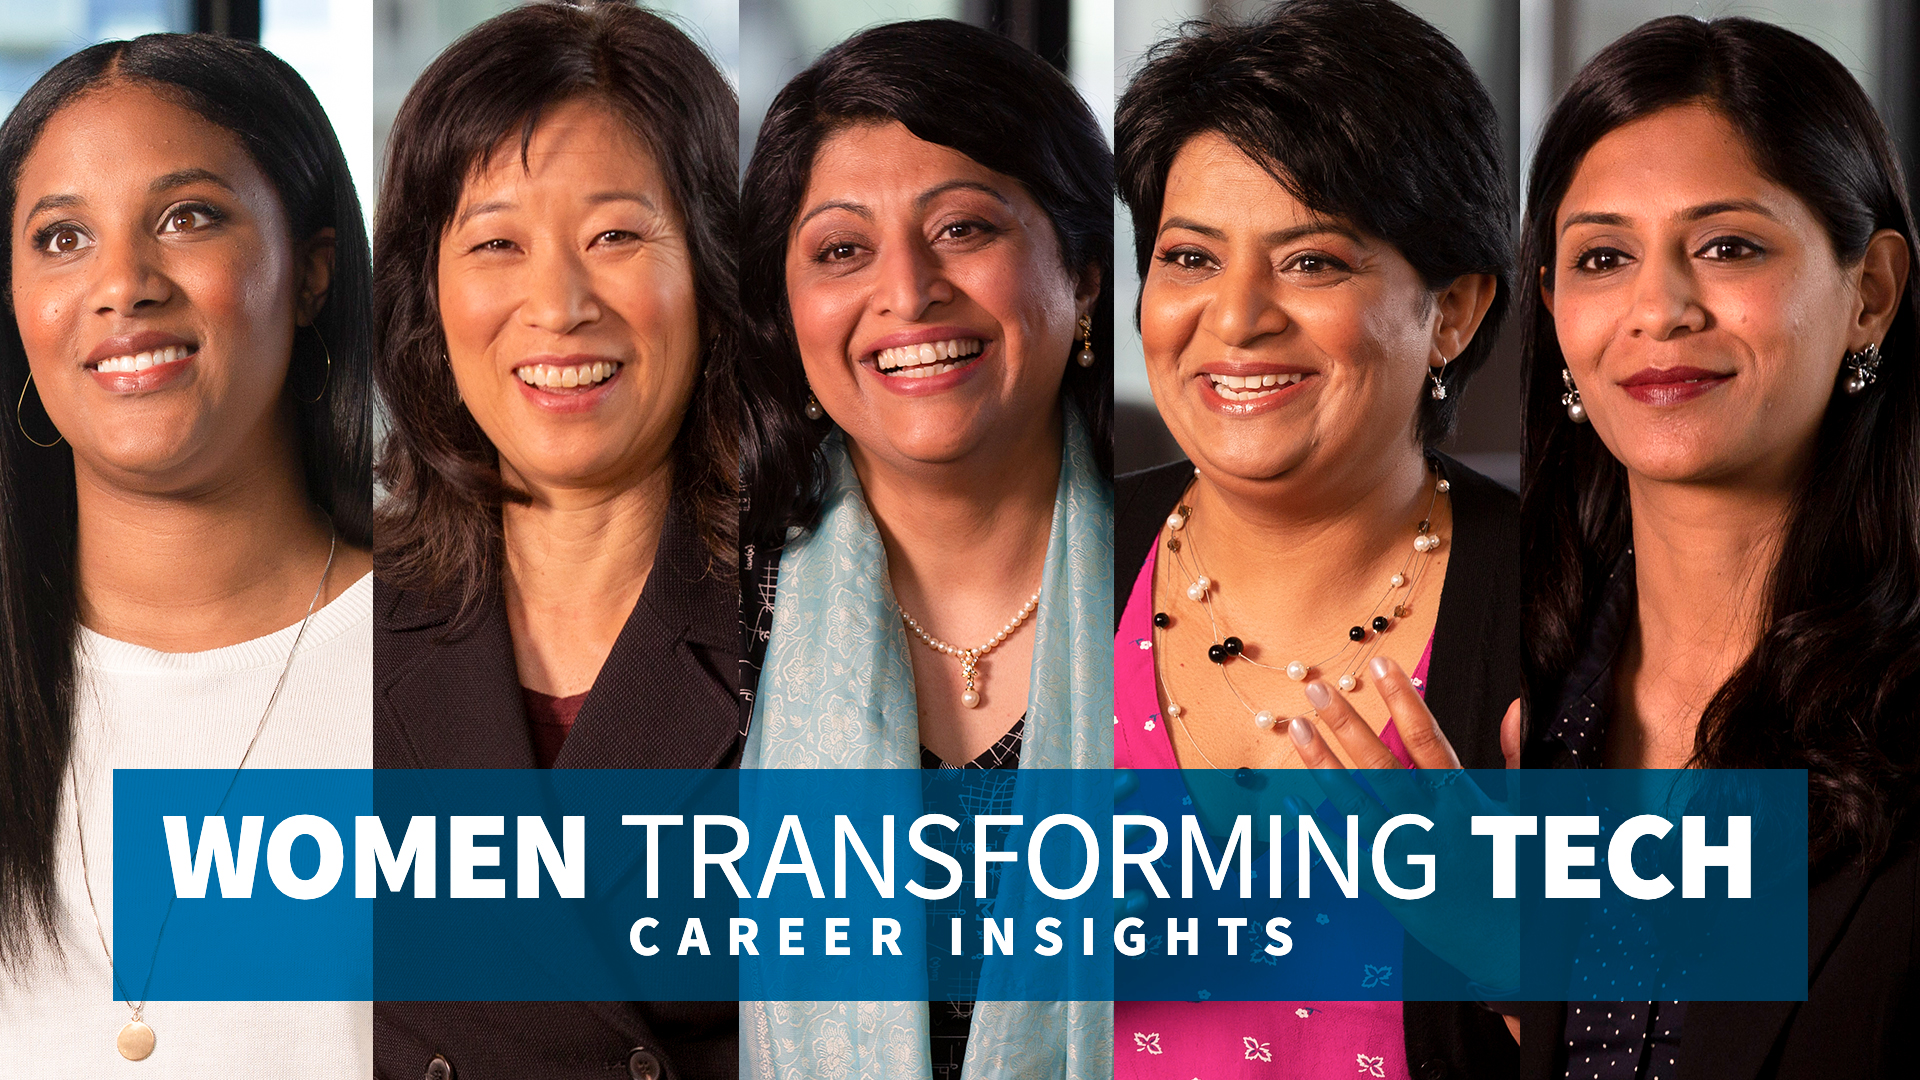 Women Transforming Tech: Career Insights